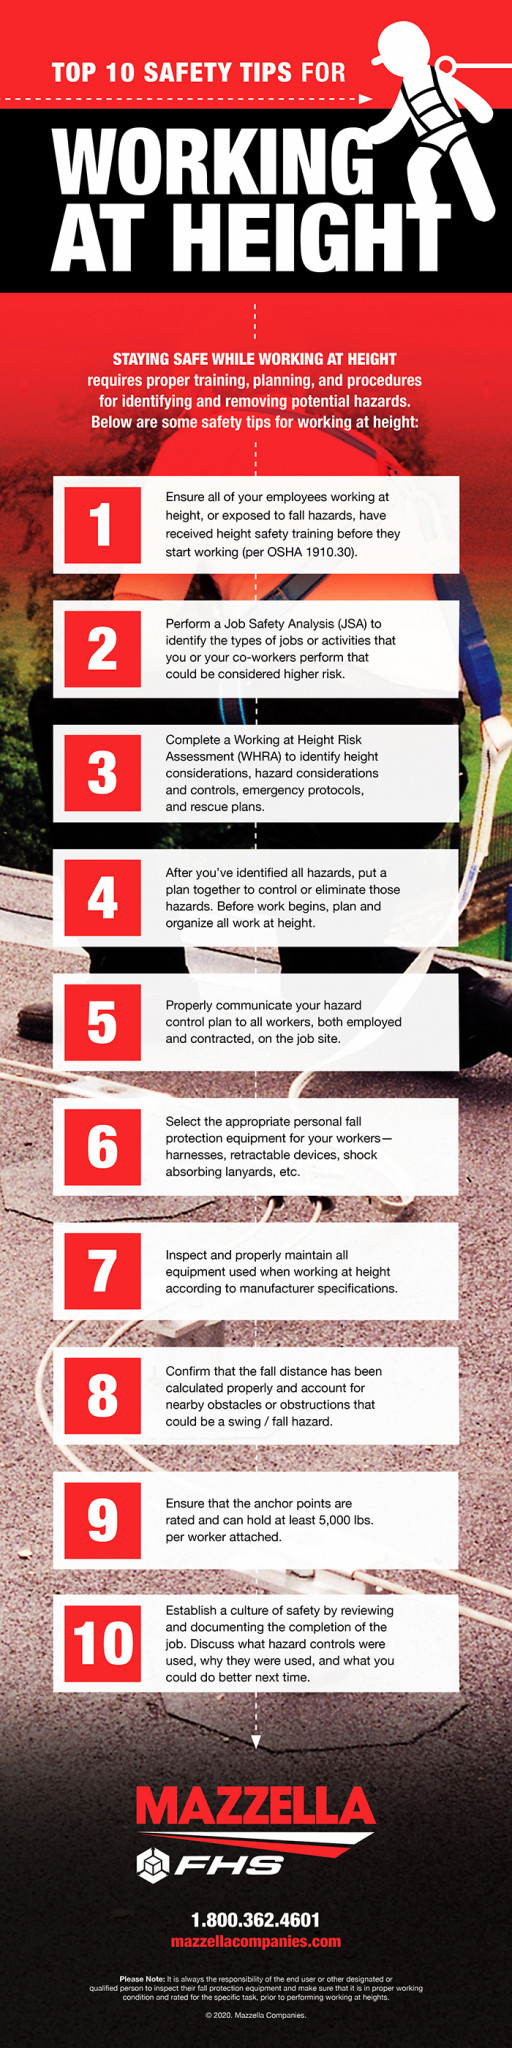 Top 10 Safety Tips For Working At Height Infographic